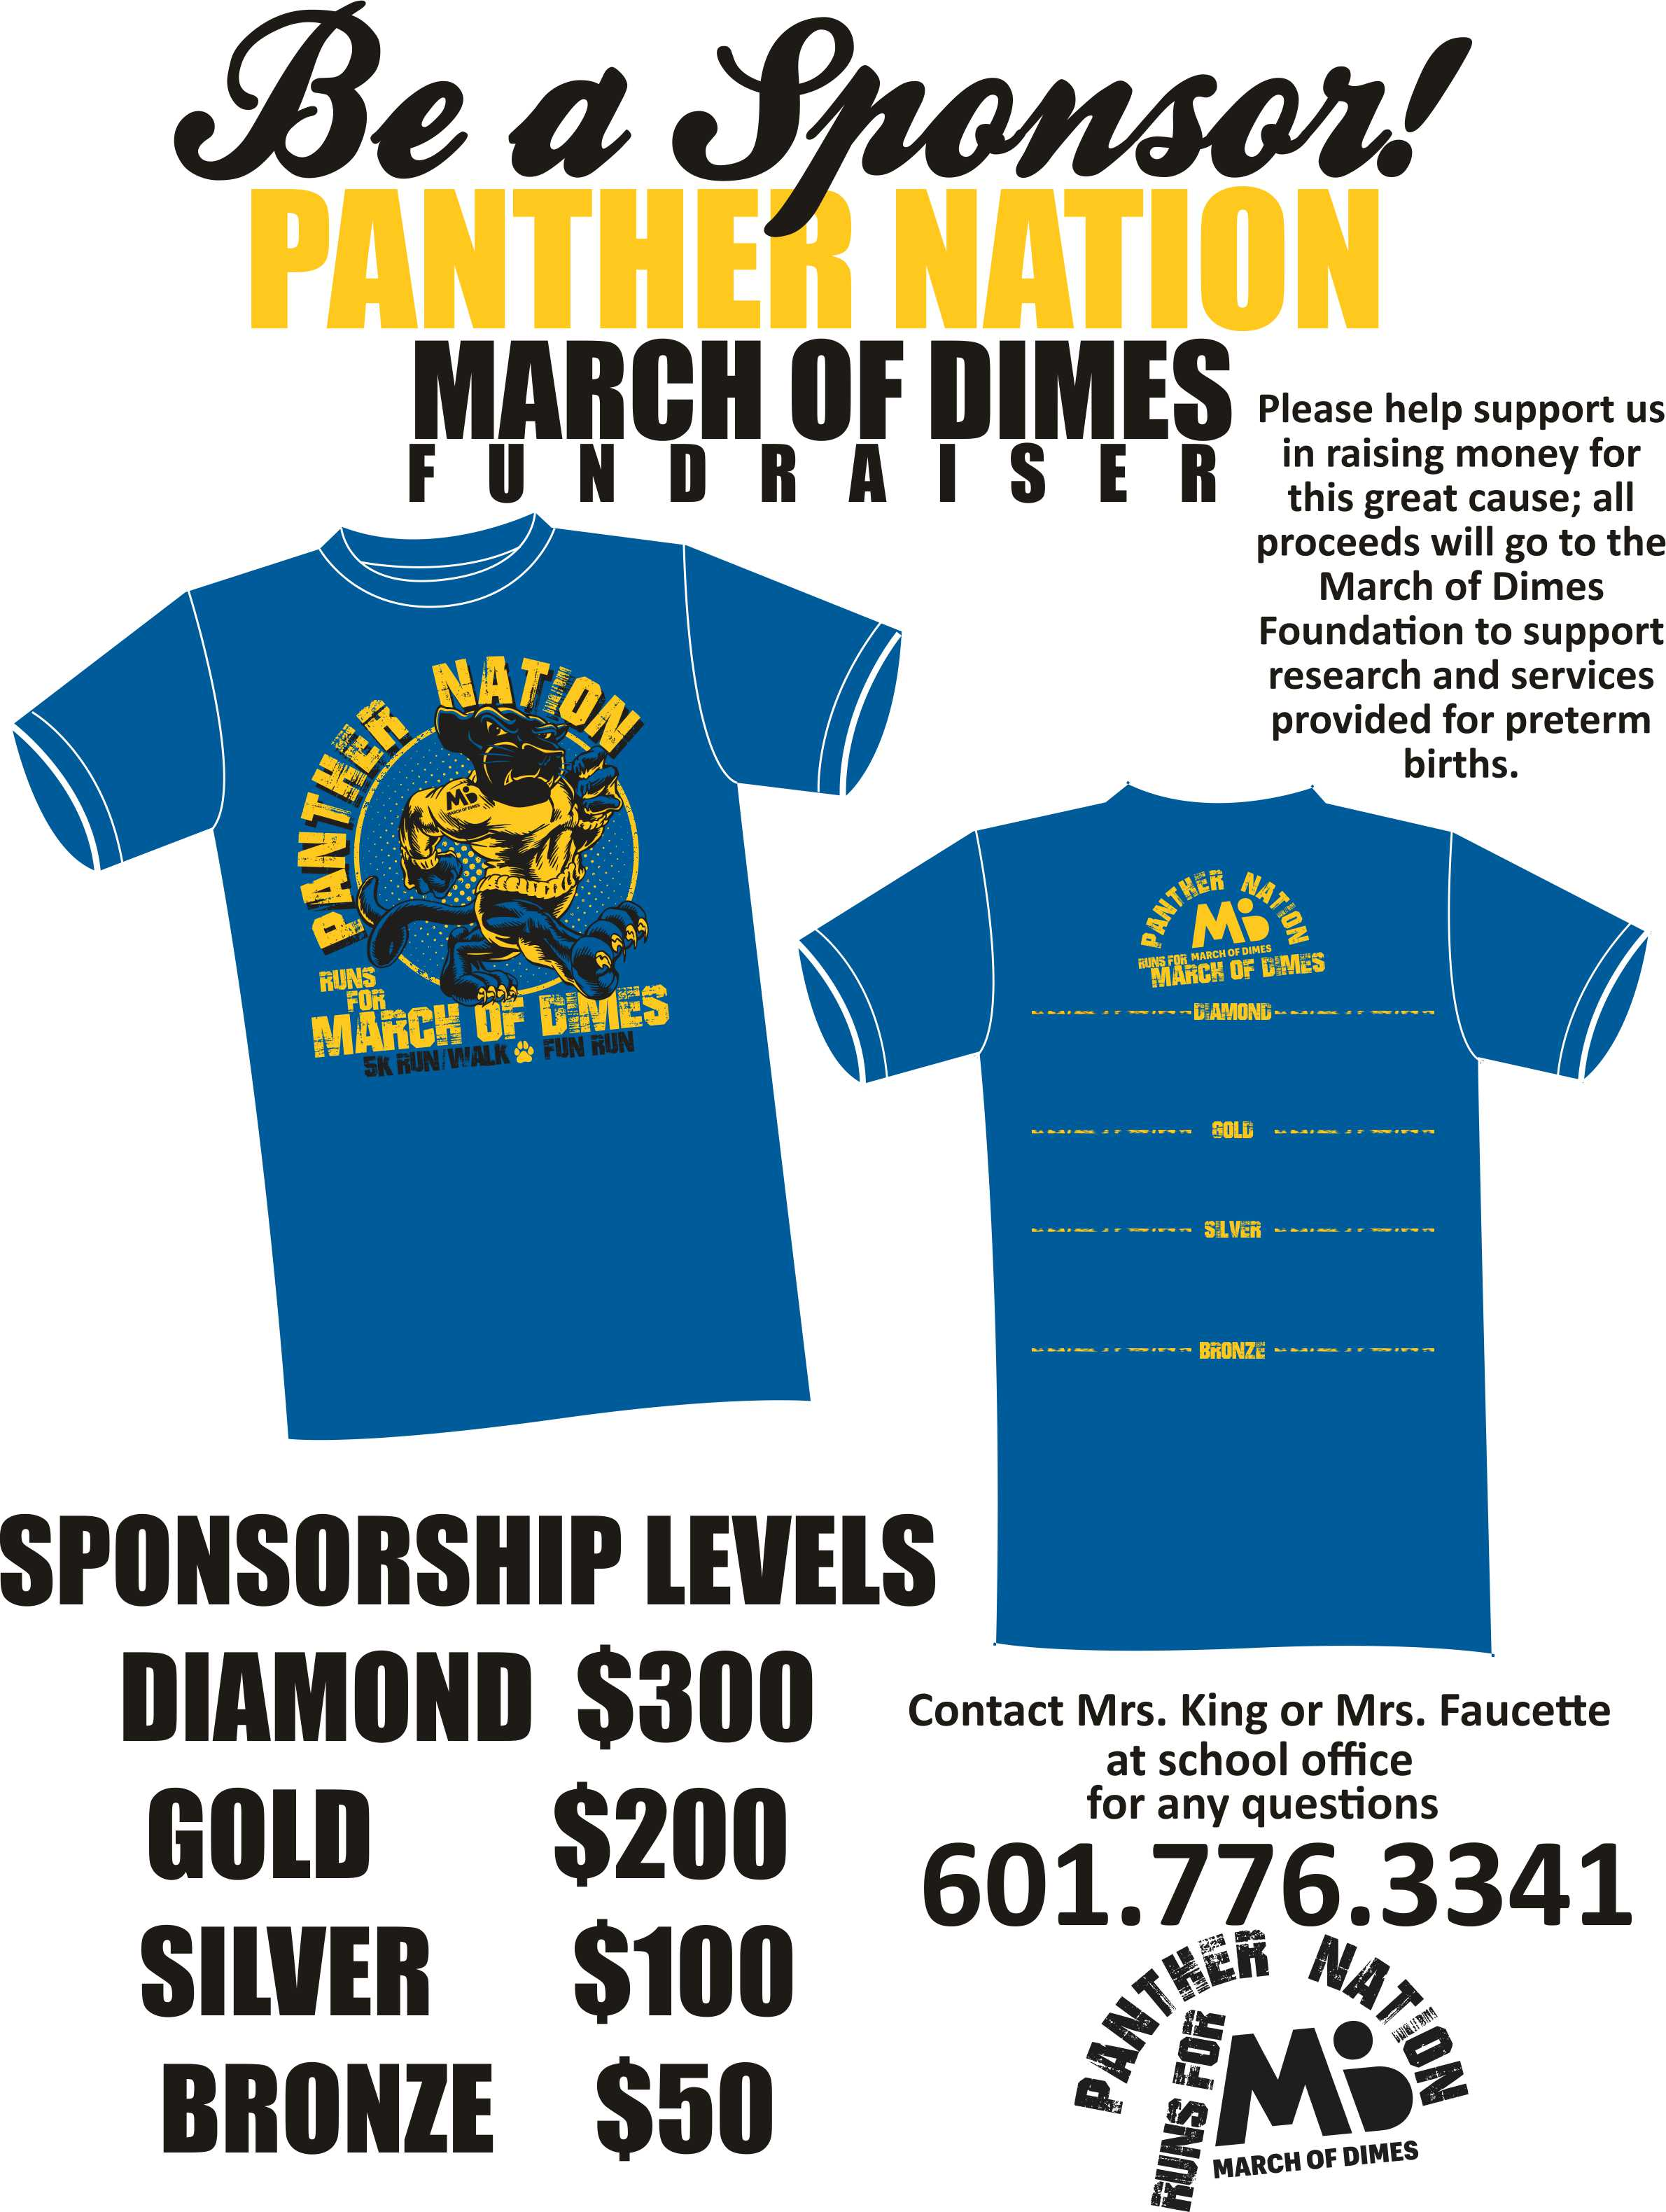 A Panther Nation flyer explaining sponsorships for the March of Dimes fundraiser.